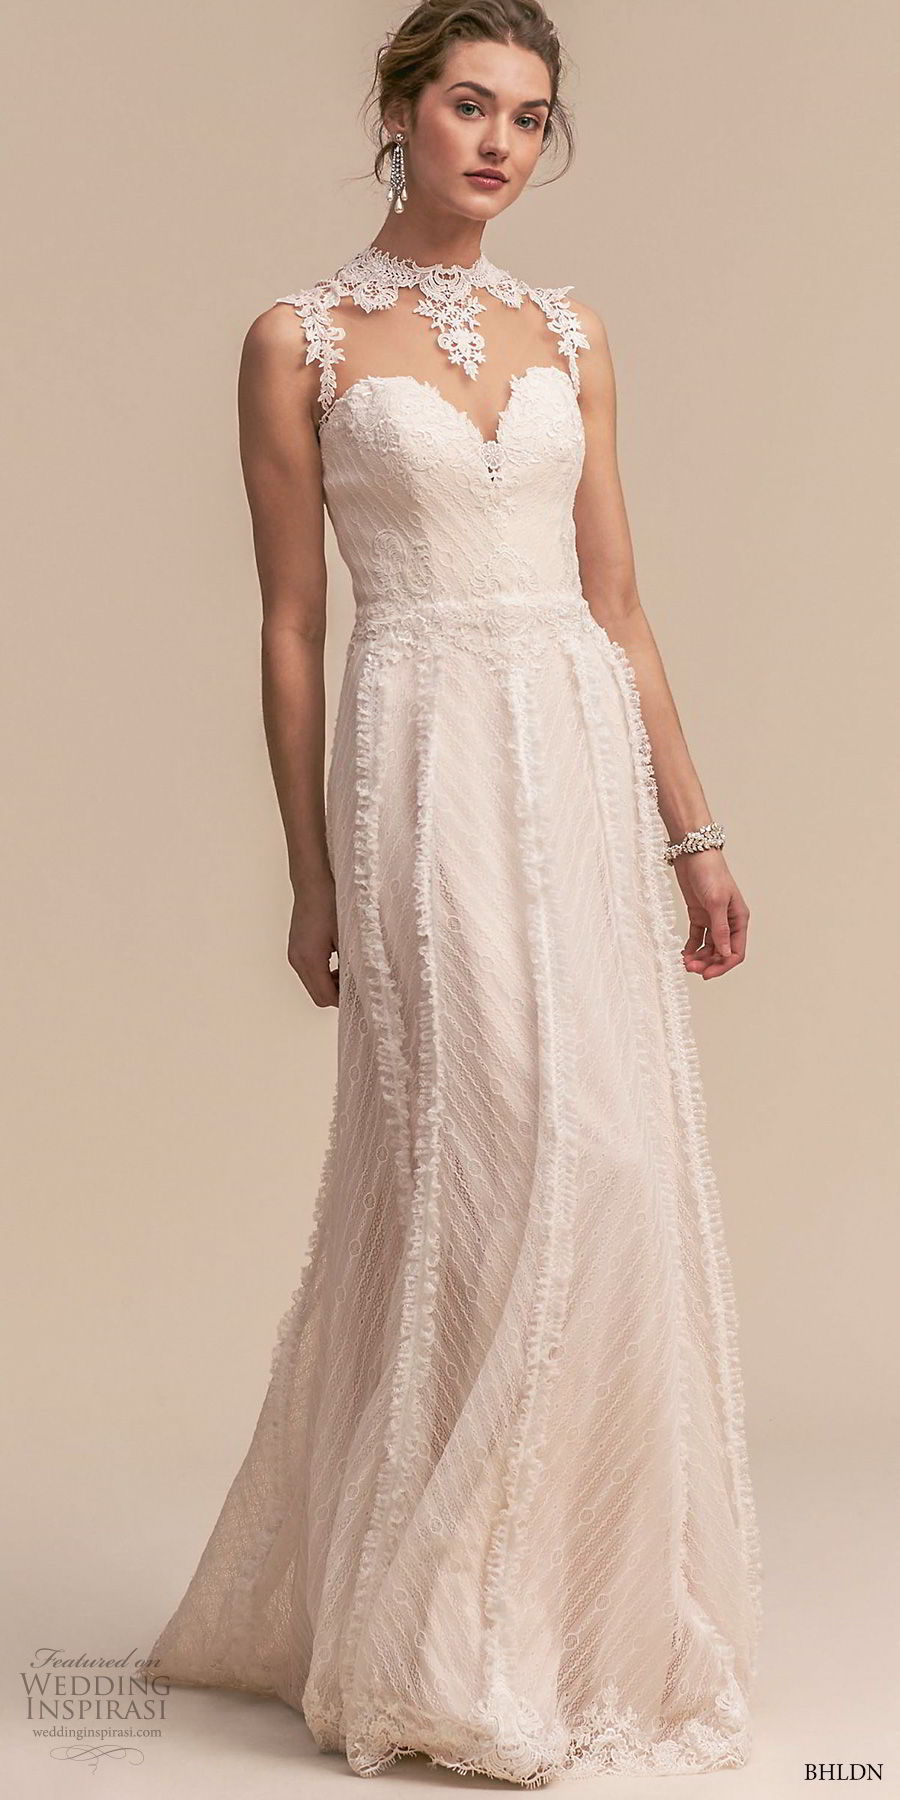 bhldn 2018 whispers bridal sleeveless illusion jewel sweetheart neckline full embellishment romantic a line wedding dress sheer button back sweep train (2) mv